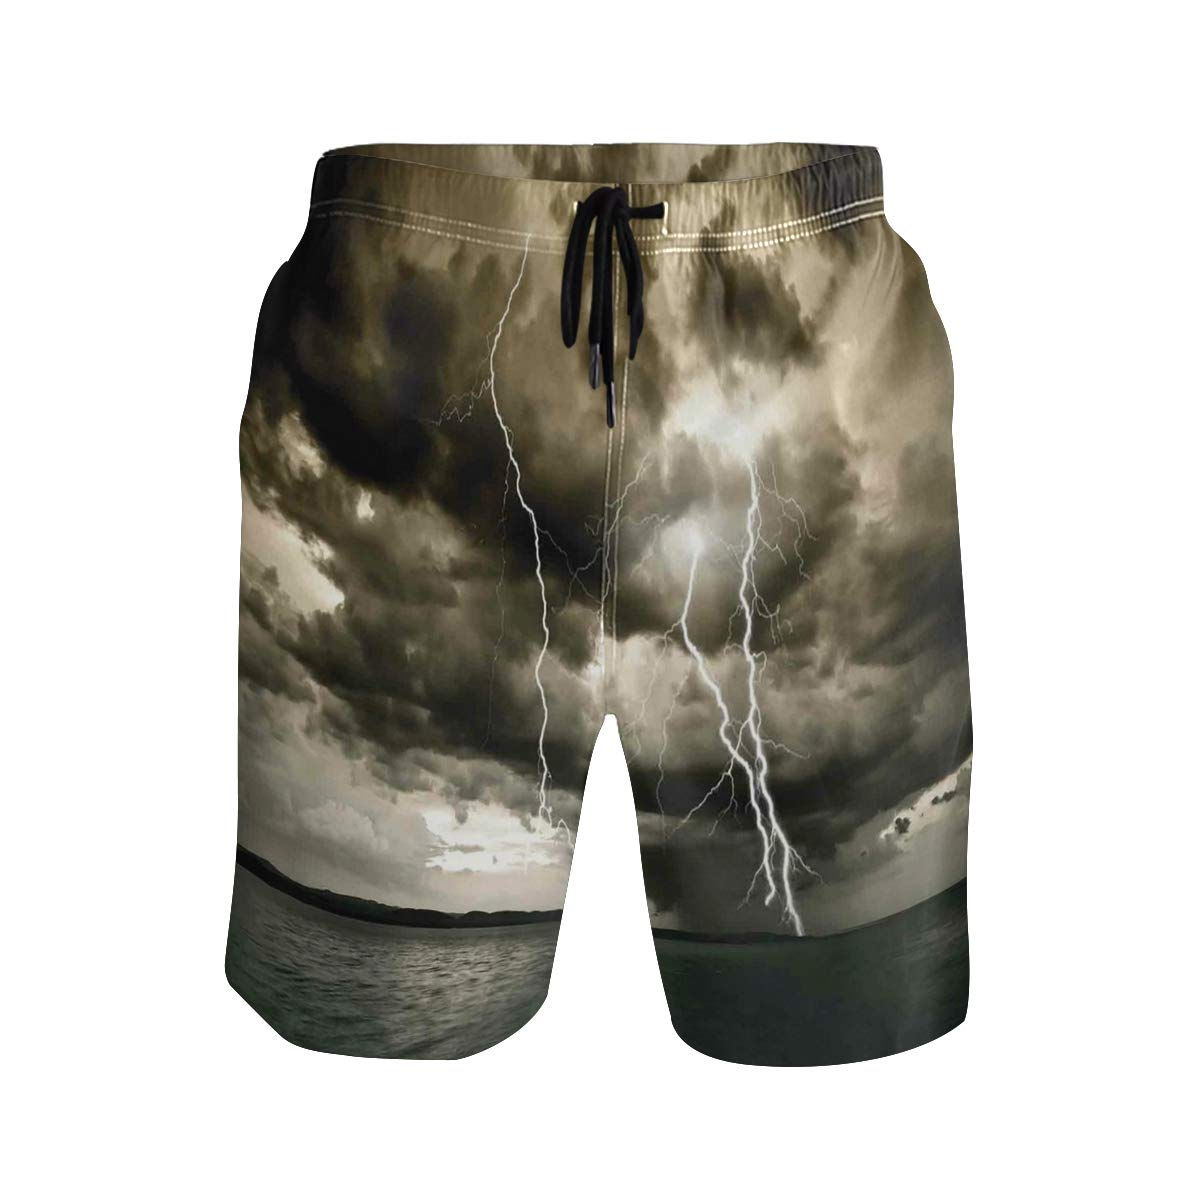 COVASA Mens Summer ShortsMajestic Rain Cloud with Thunderstorm All Over The Oc